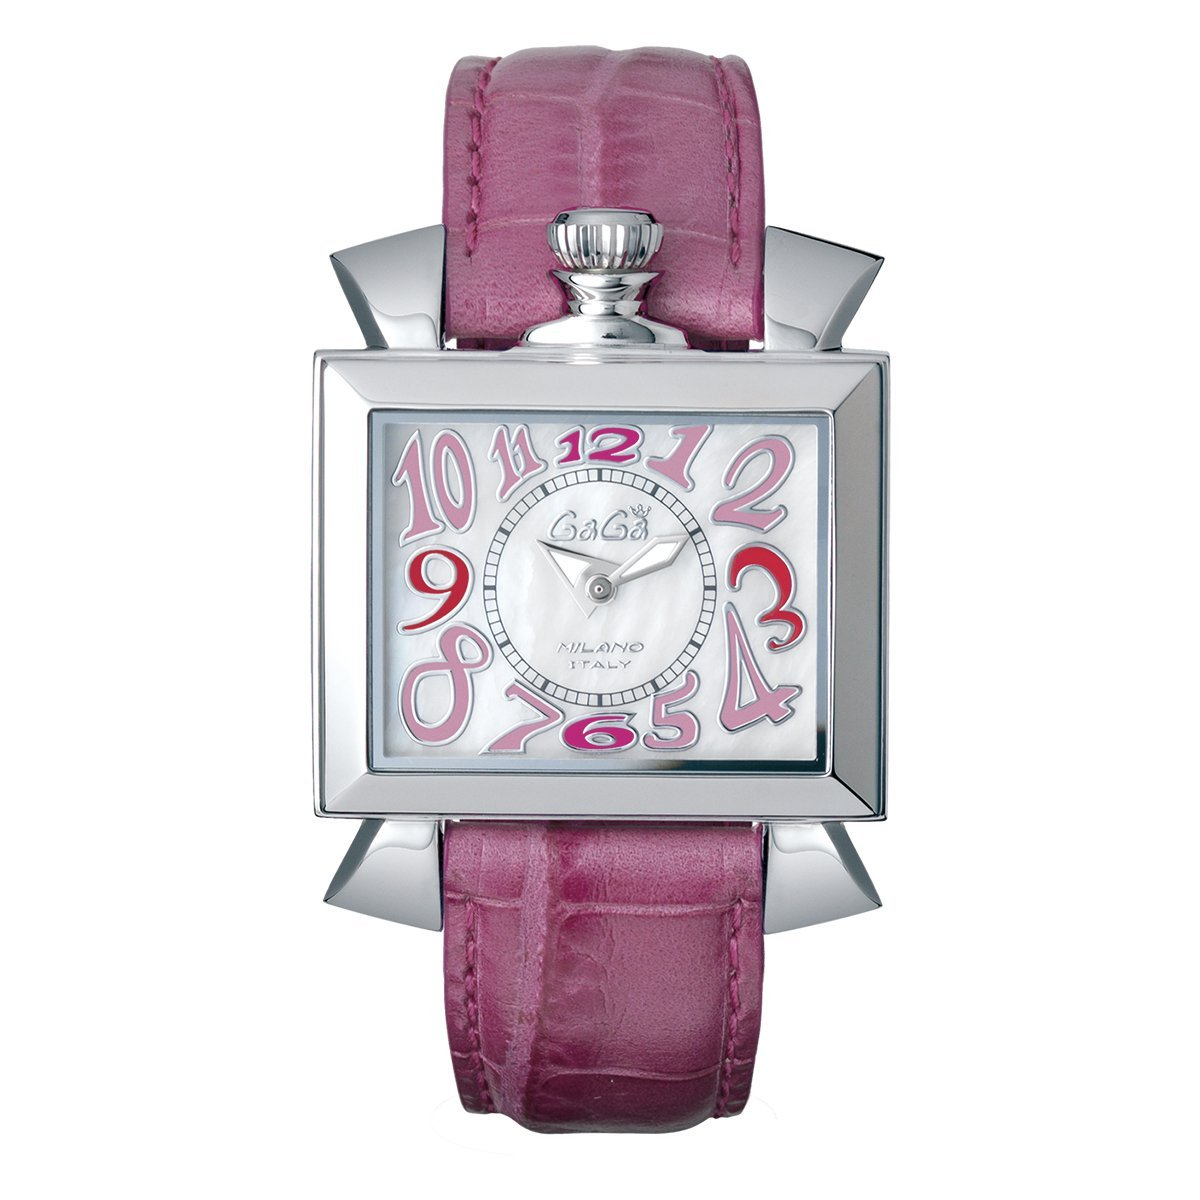 GaGà Milano Napoleone Watch Mother of Pearl Dial Pink - Watches & Crystals